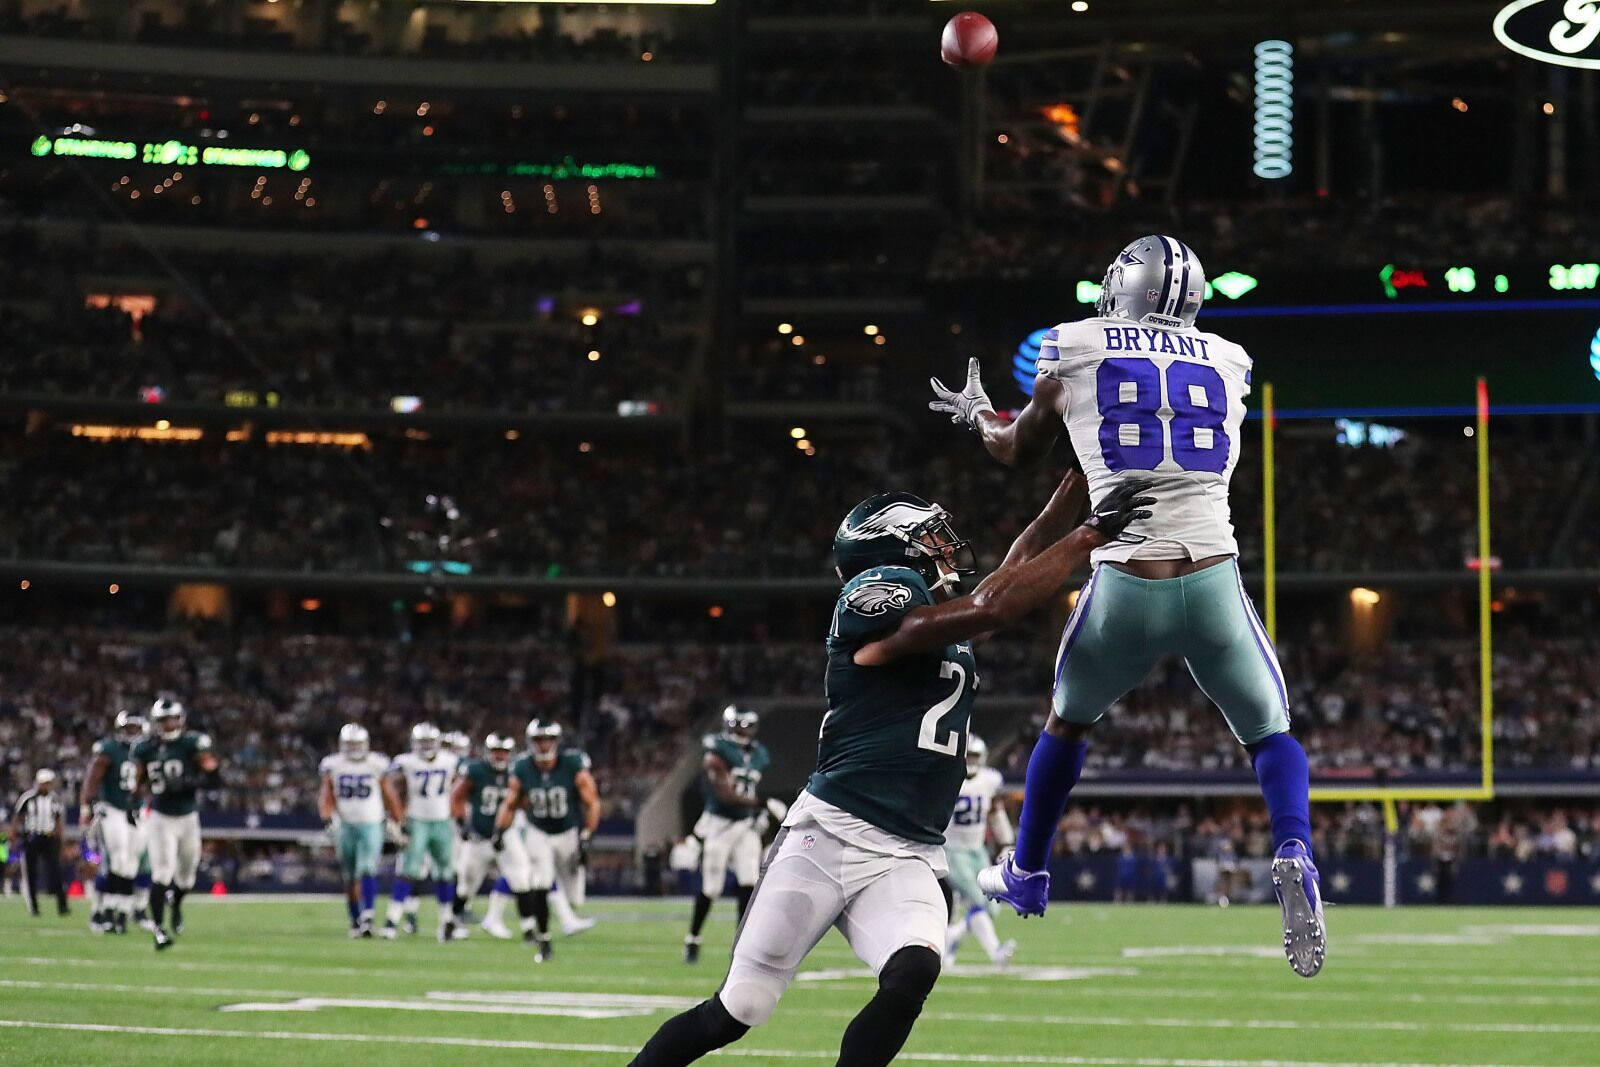 Dallas Cowboys: It's time to bring Dez Bryant back to BIG D